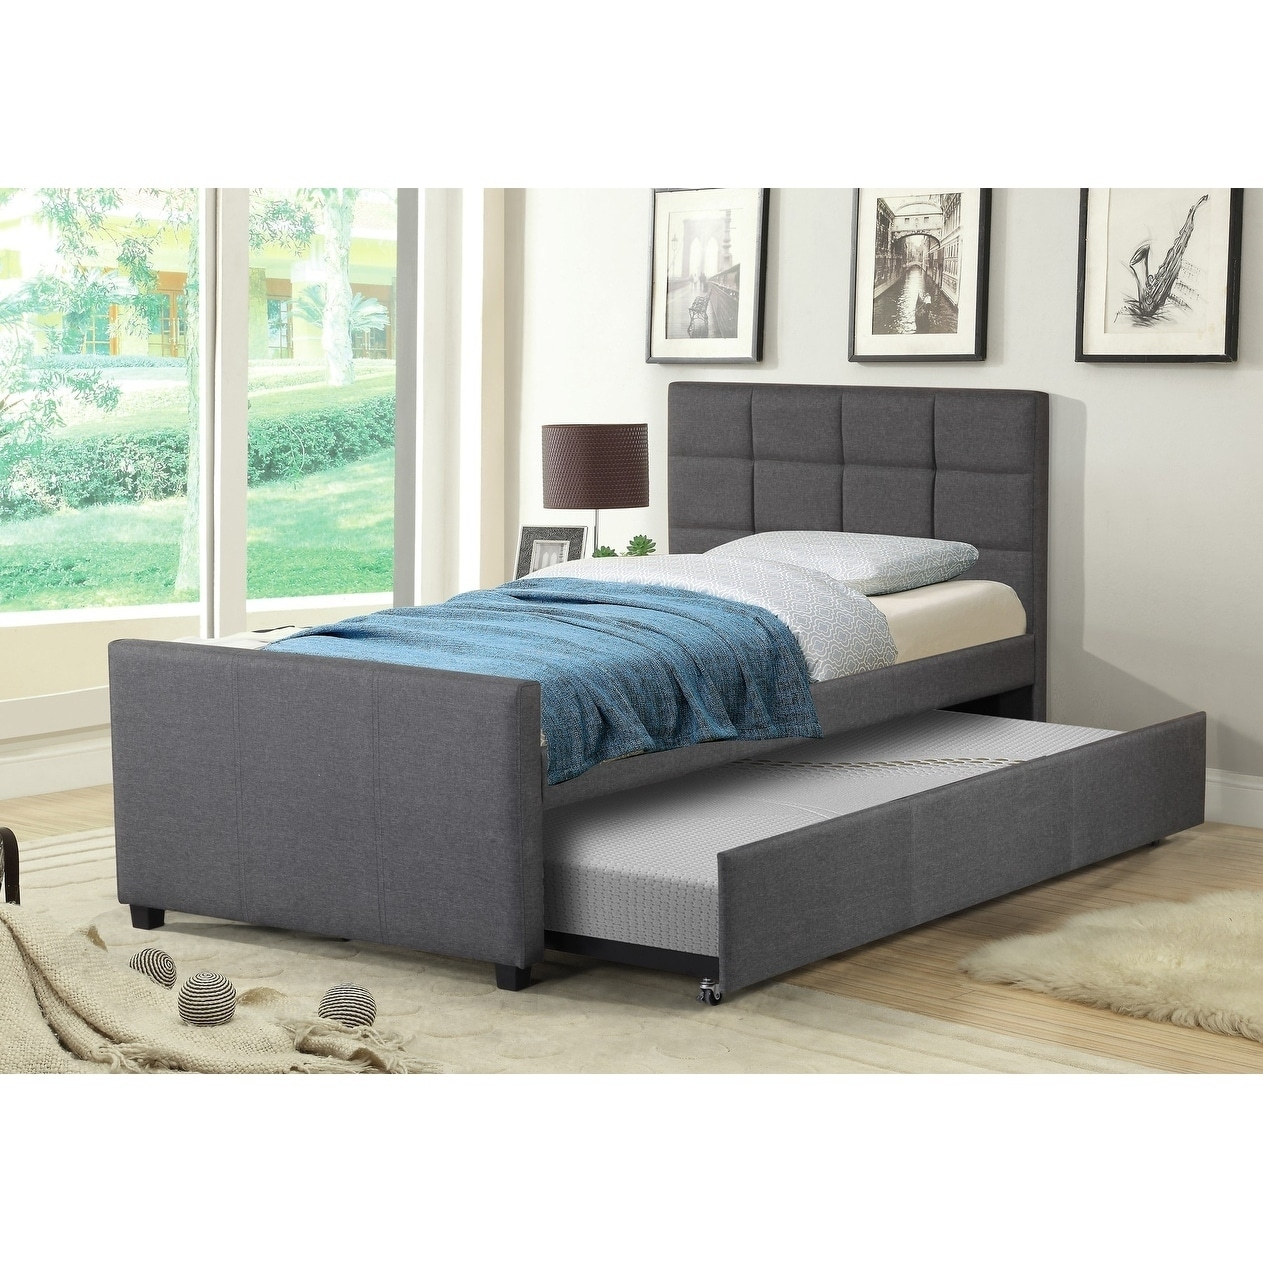 Picture of: Best Quality Furniture Twin Upholstered Panel Bed With Twin Trundle Bed On Sale Overstock 17983194 Fabric Grey